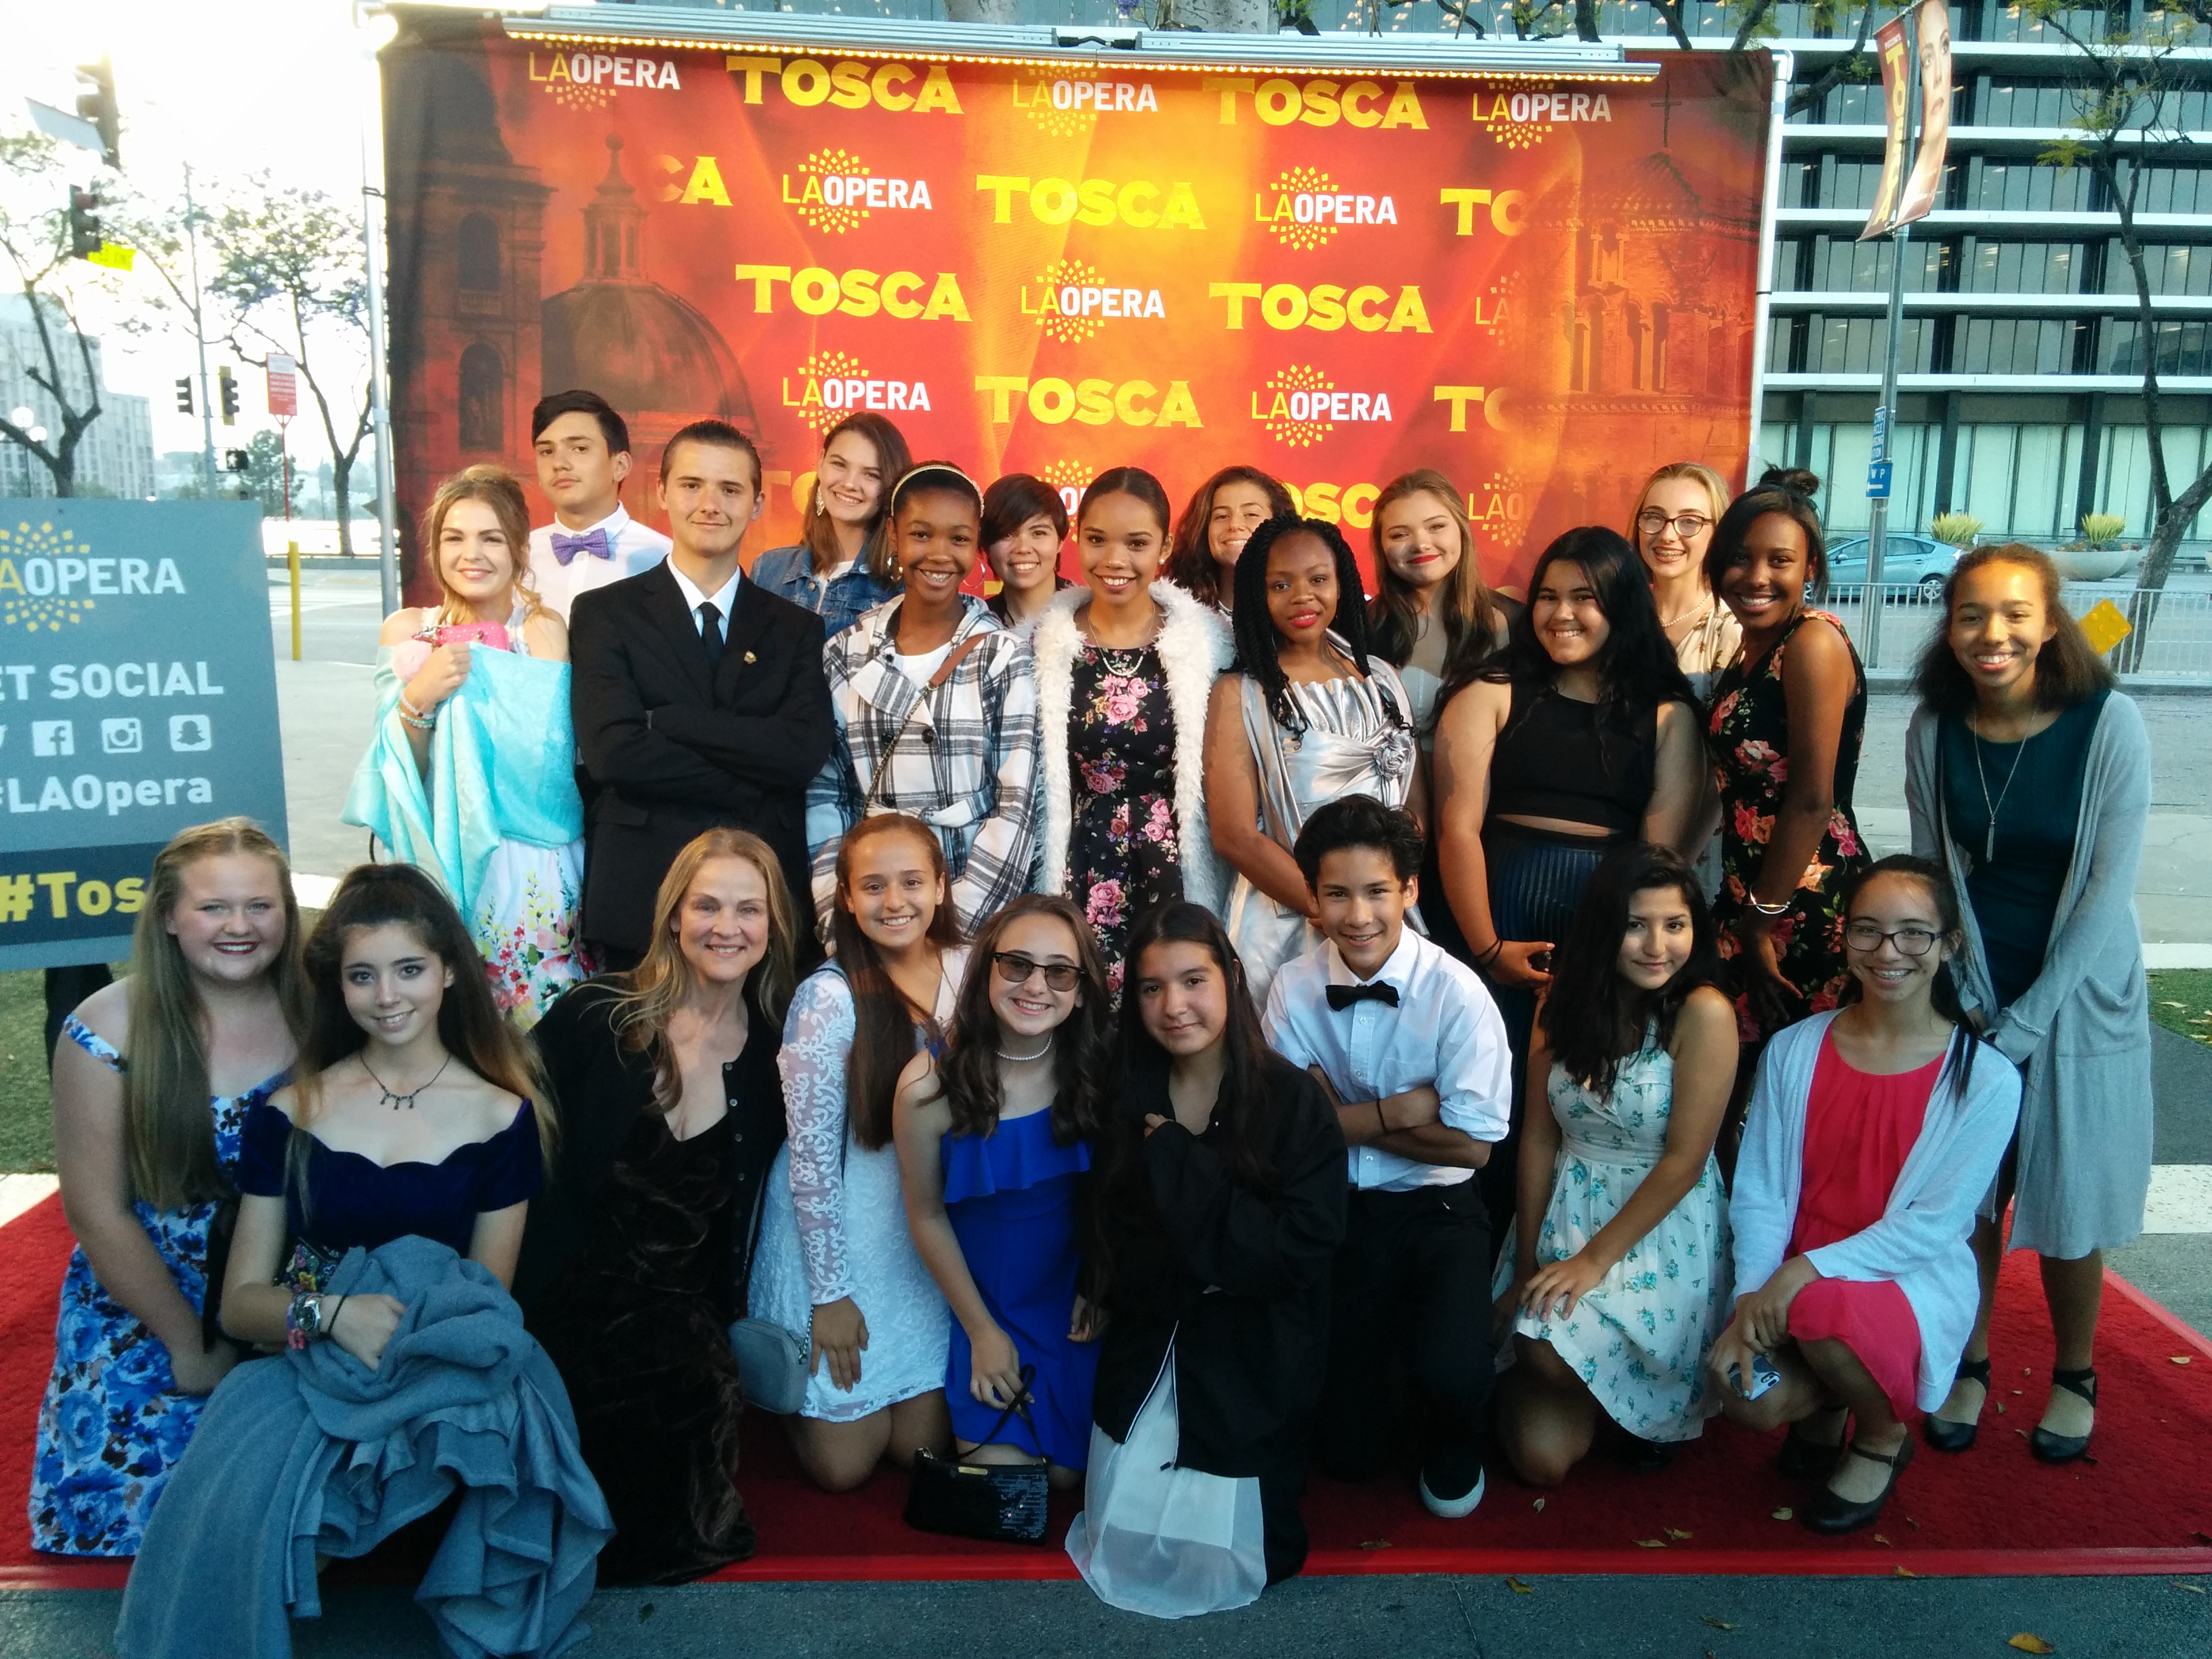 Our Students at the Opera